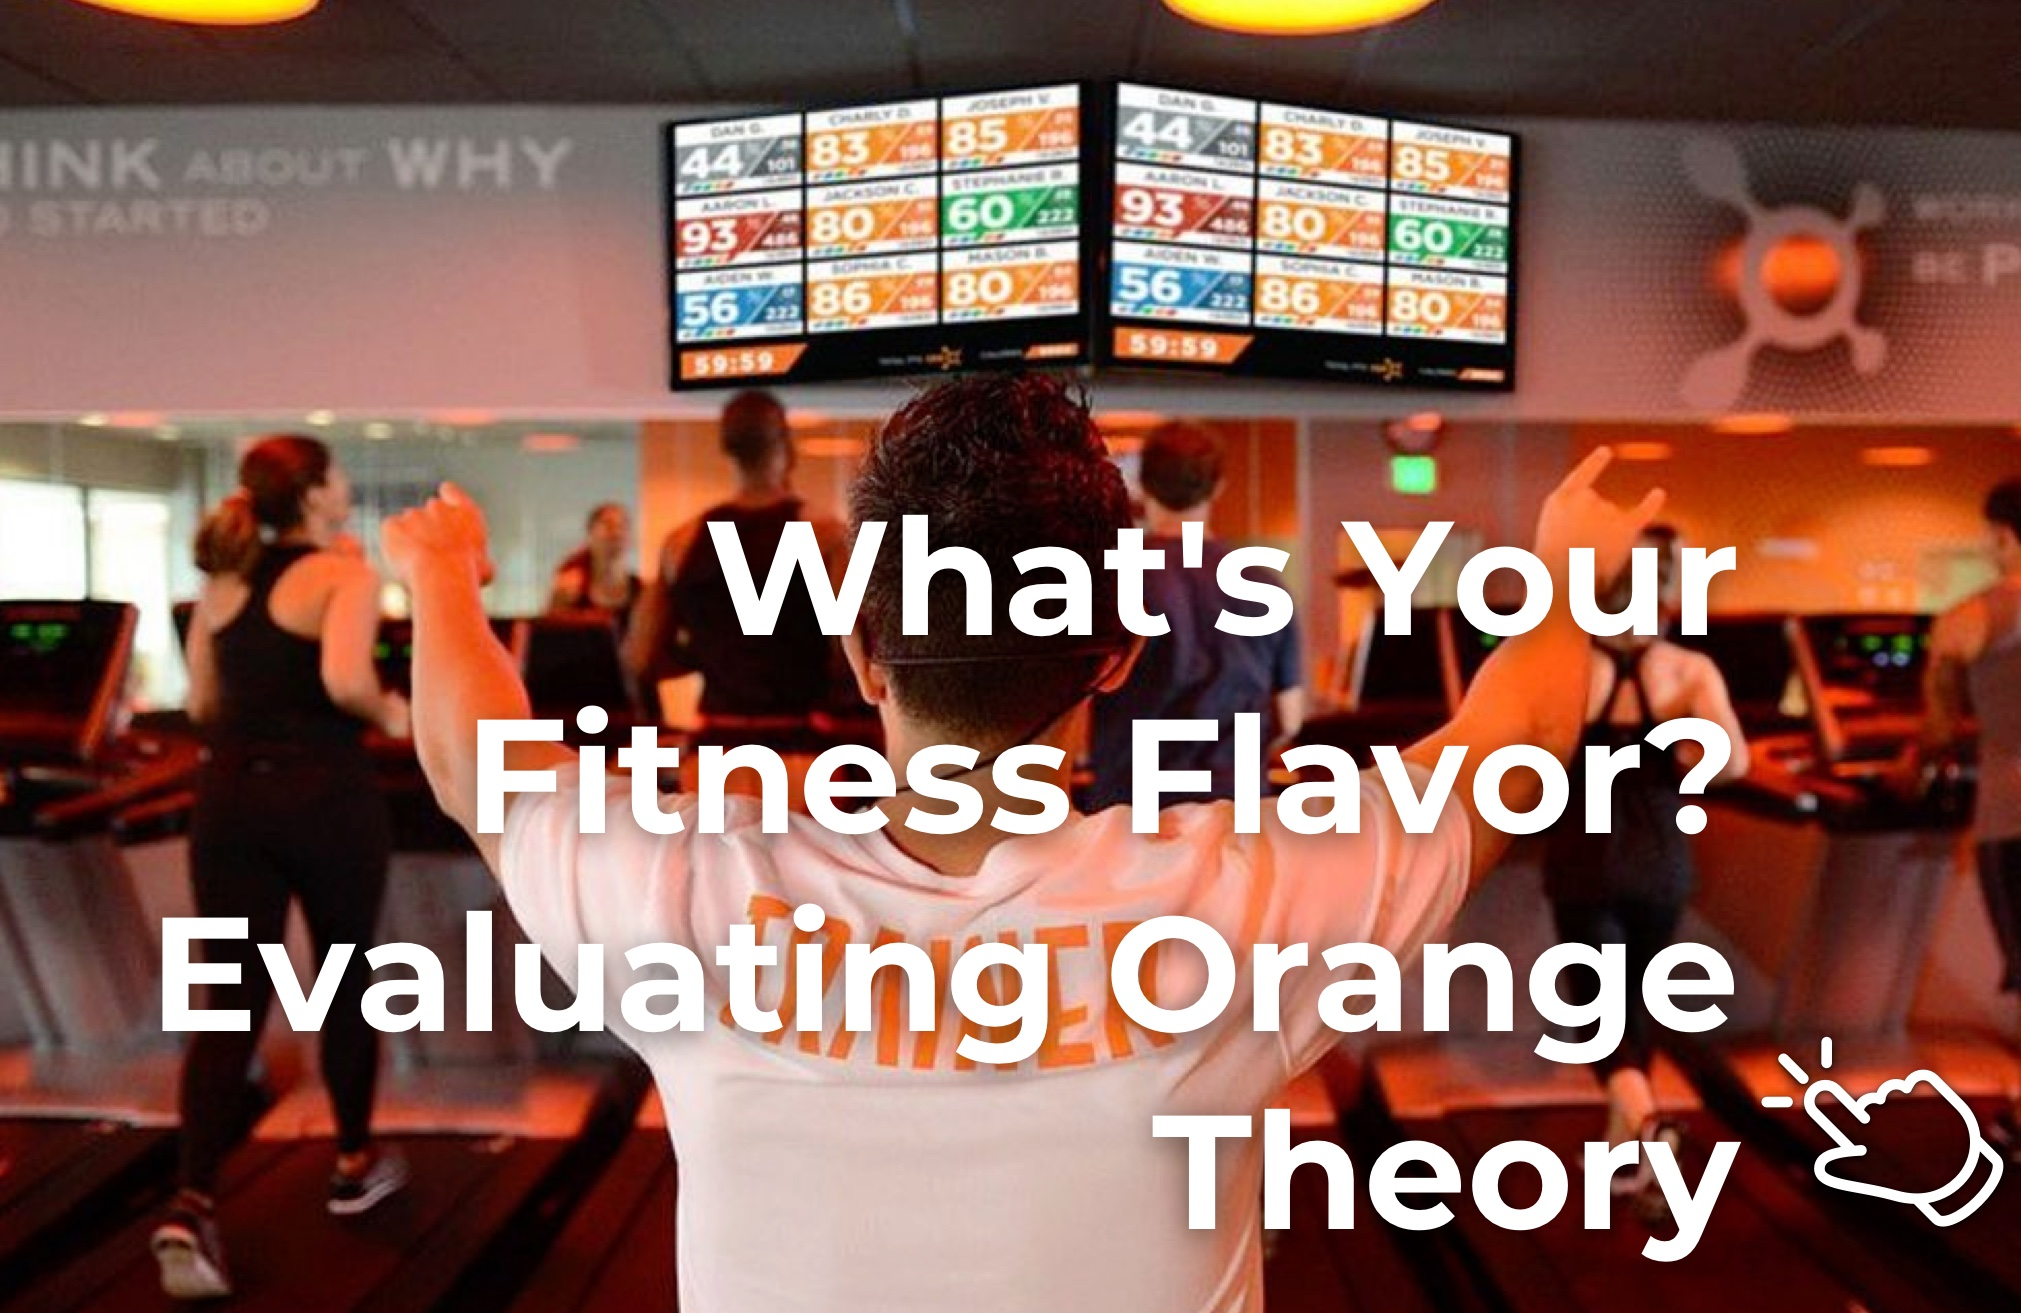 What's Your Fitness Flavor? Evaluating Orange Theory